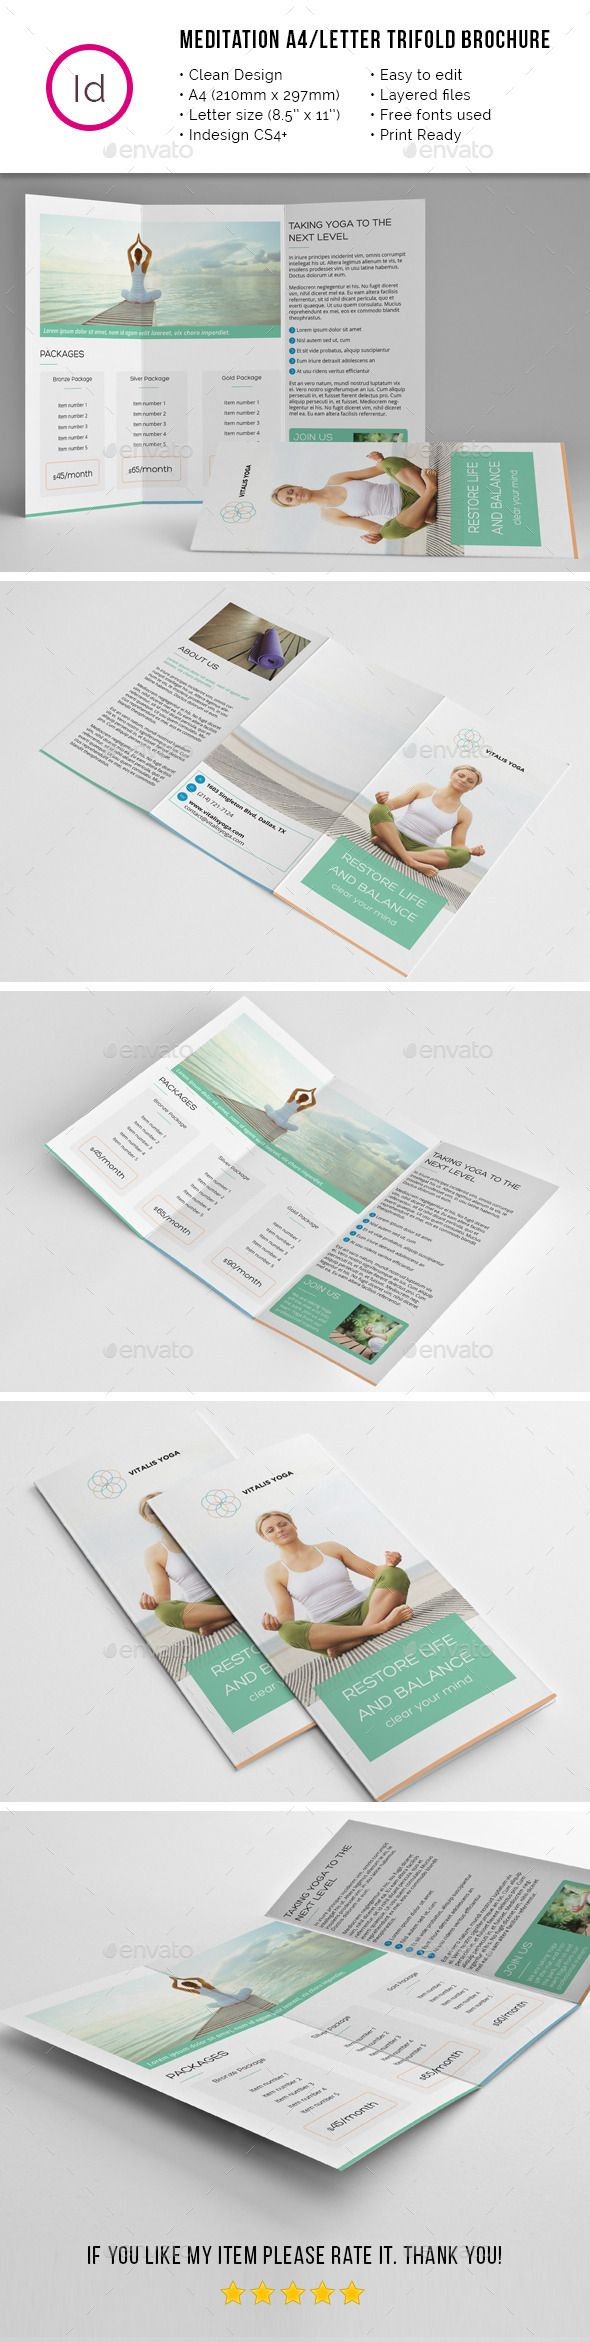 Fine 1 Page Website Template Tiny 1 Week Calendar Template Solid 10 Envelope Template 2 Circle Label Template Youthful 2 Page Resume Format Header White20 Piece Puzzle Template  Letter Trifold Brochure Template #design ..